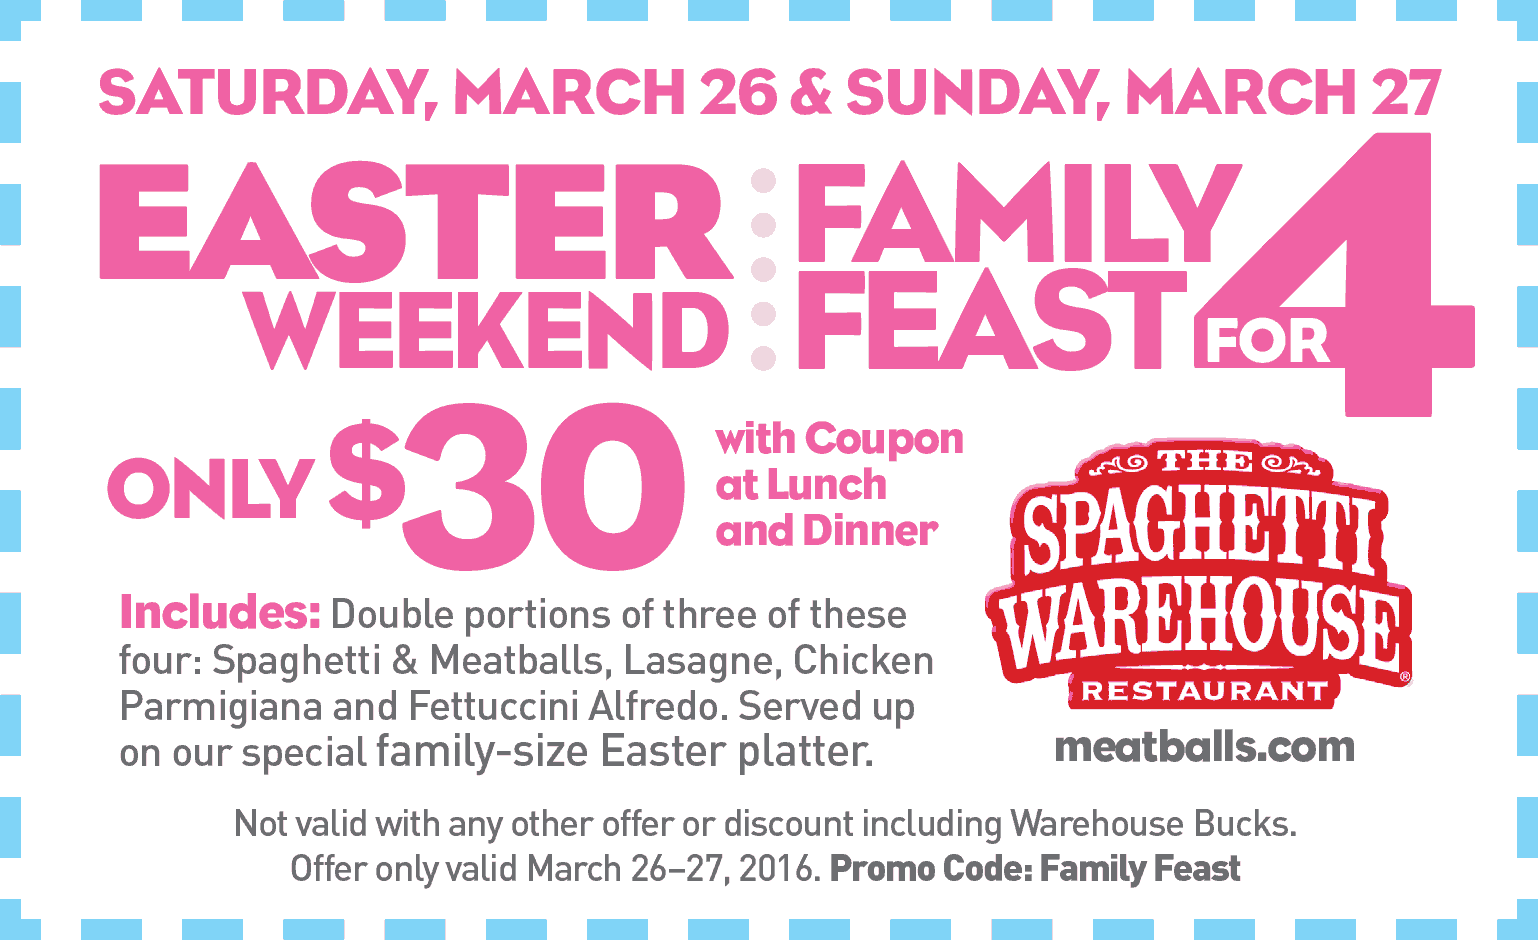 Spaghetti Warehouse Coupon September 2018 Family feast for 4 = $30 this weekend at Spaghetti Warehouse